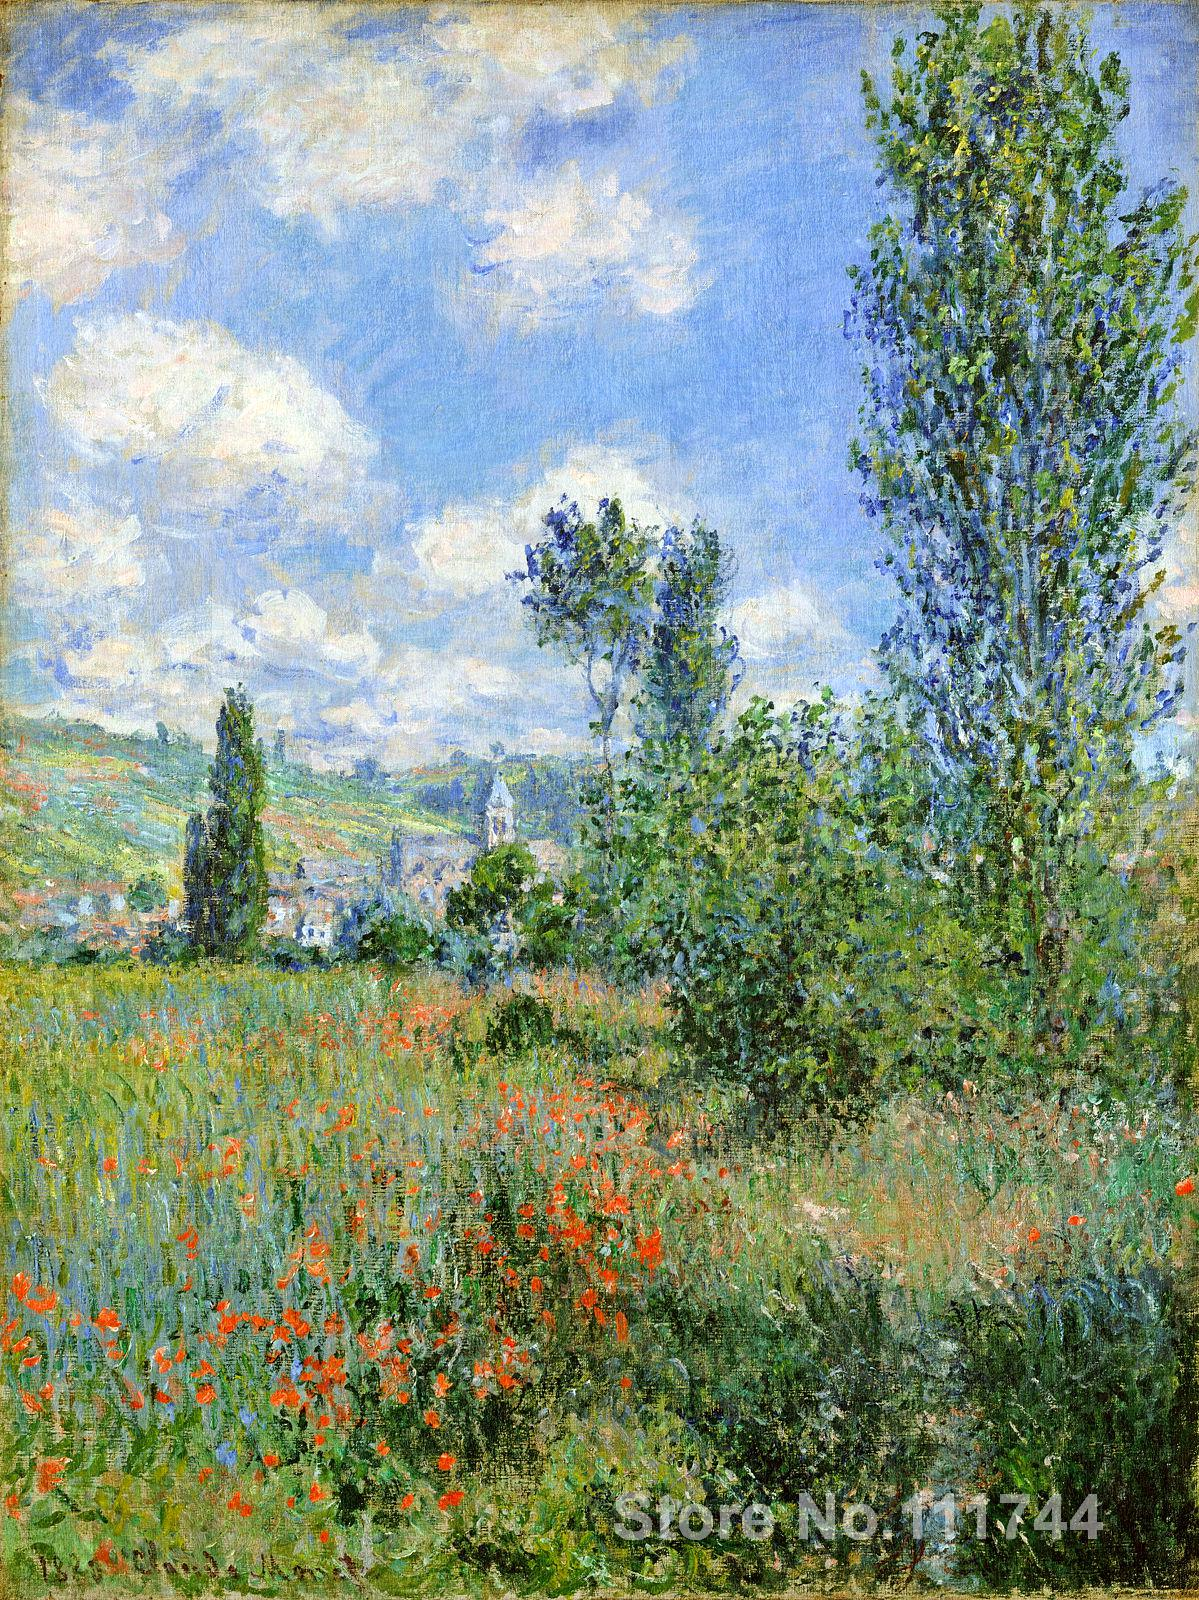 bathroom art Lane in the Poppy Fields Ile Saint Martin by Claude Monet paintings Home Decor Hand painted High qualitybathroom art Lane in the Poppy Fields Ile Saint Martin by Claude Monet paintings Home Decor Hand painted High quality